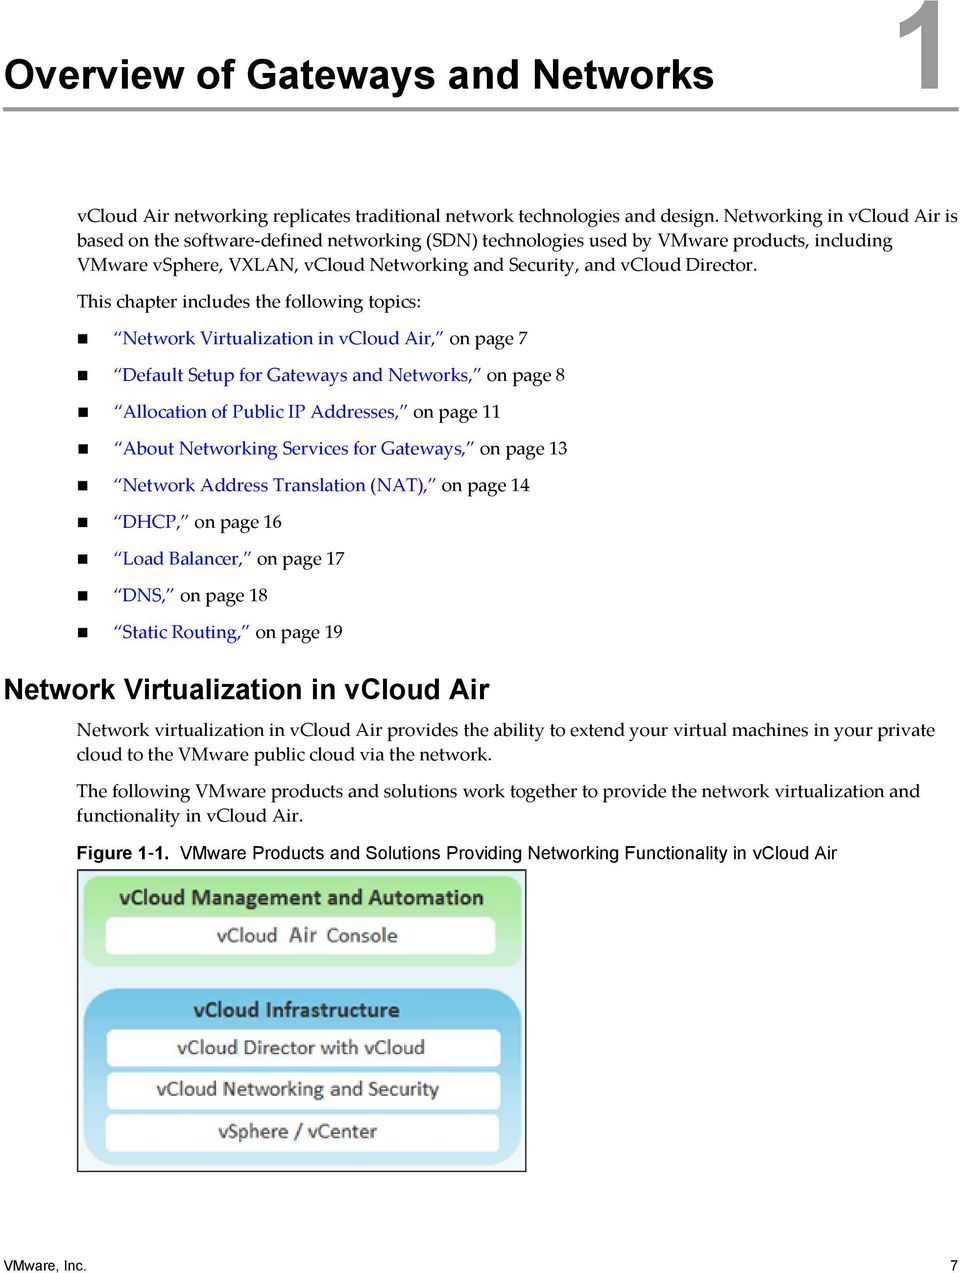 This chapter includes the following topics: Network Virtualization in vcloud Air, on page 7 Default Setup for Gateways and Networks, on page 8 Allocation of Public IP Addresses, on page 11 About